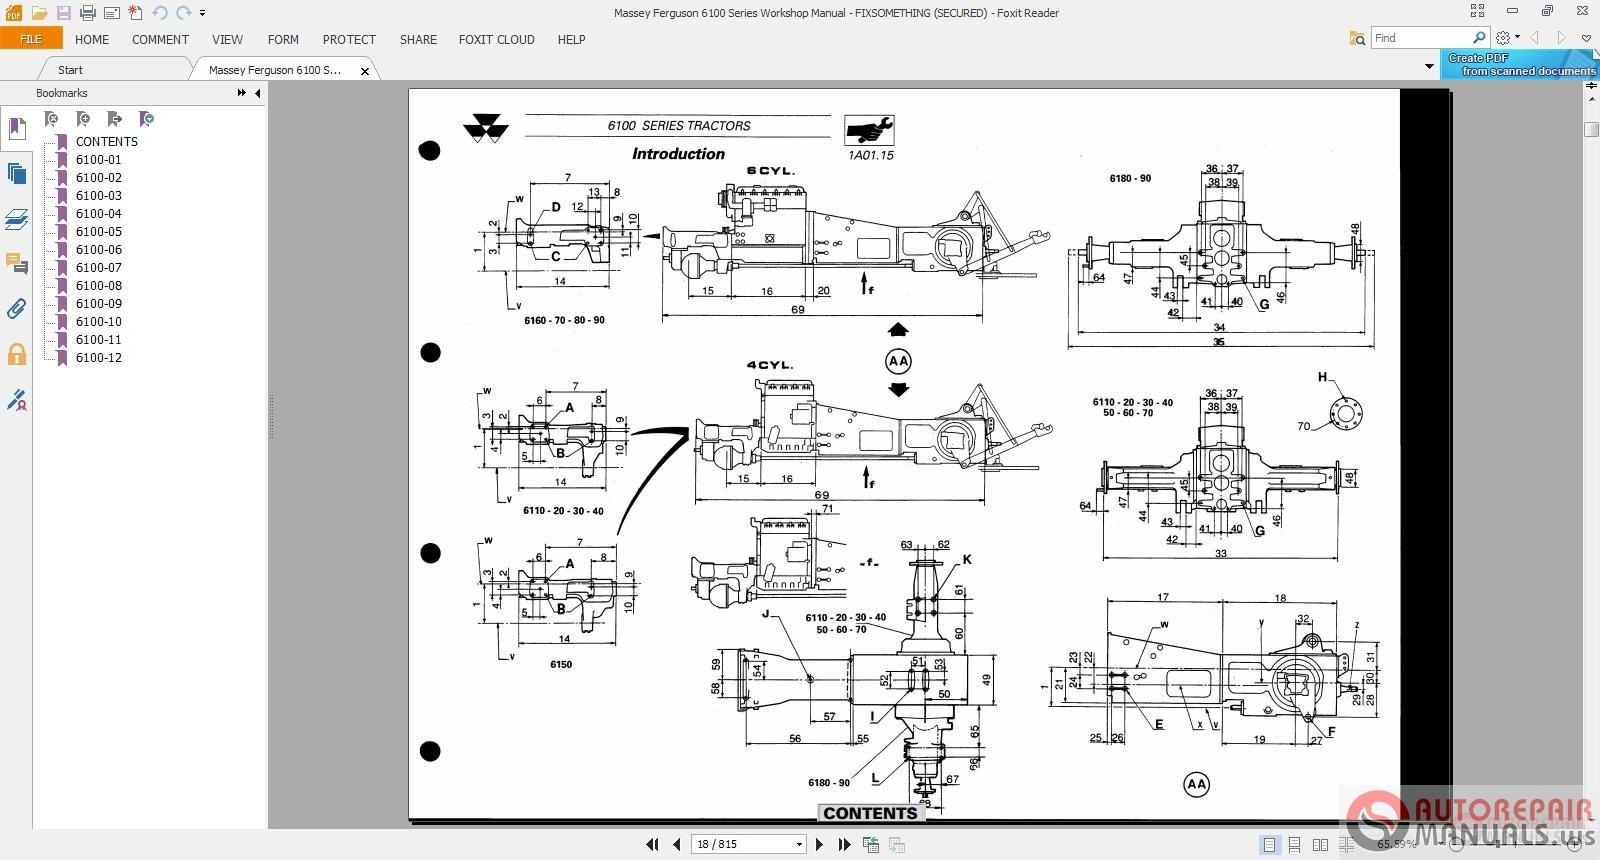 Massey Ferguson Service Complete Tractor Workshop Manual on Massey Ferguson Tractor Parts Diagram